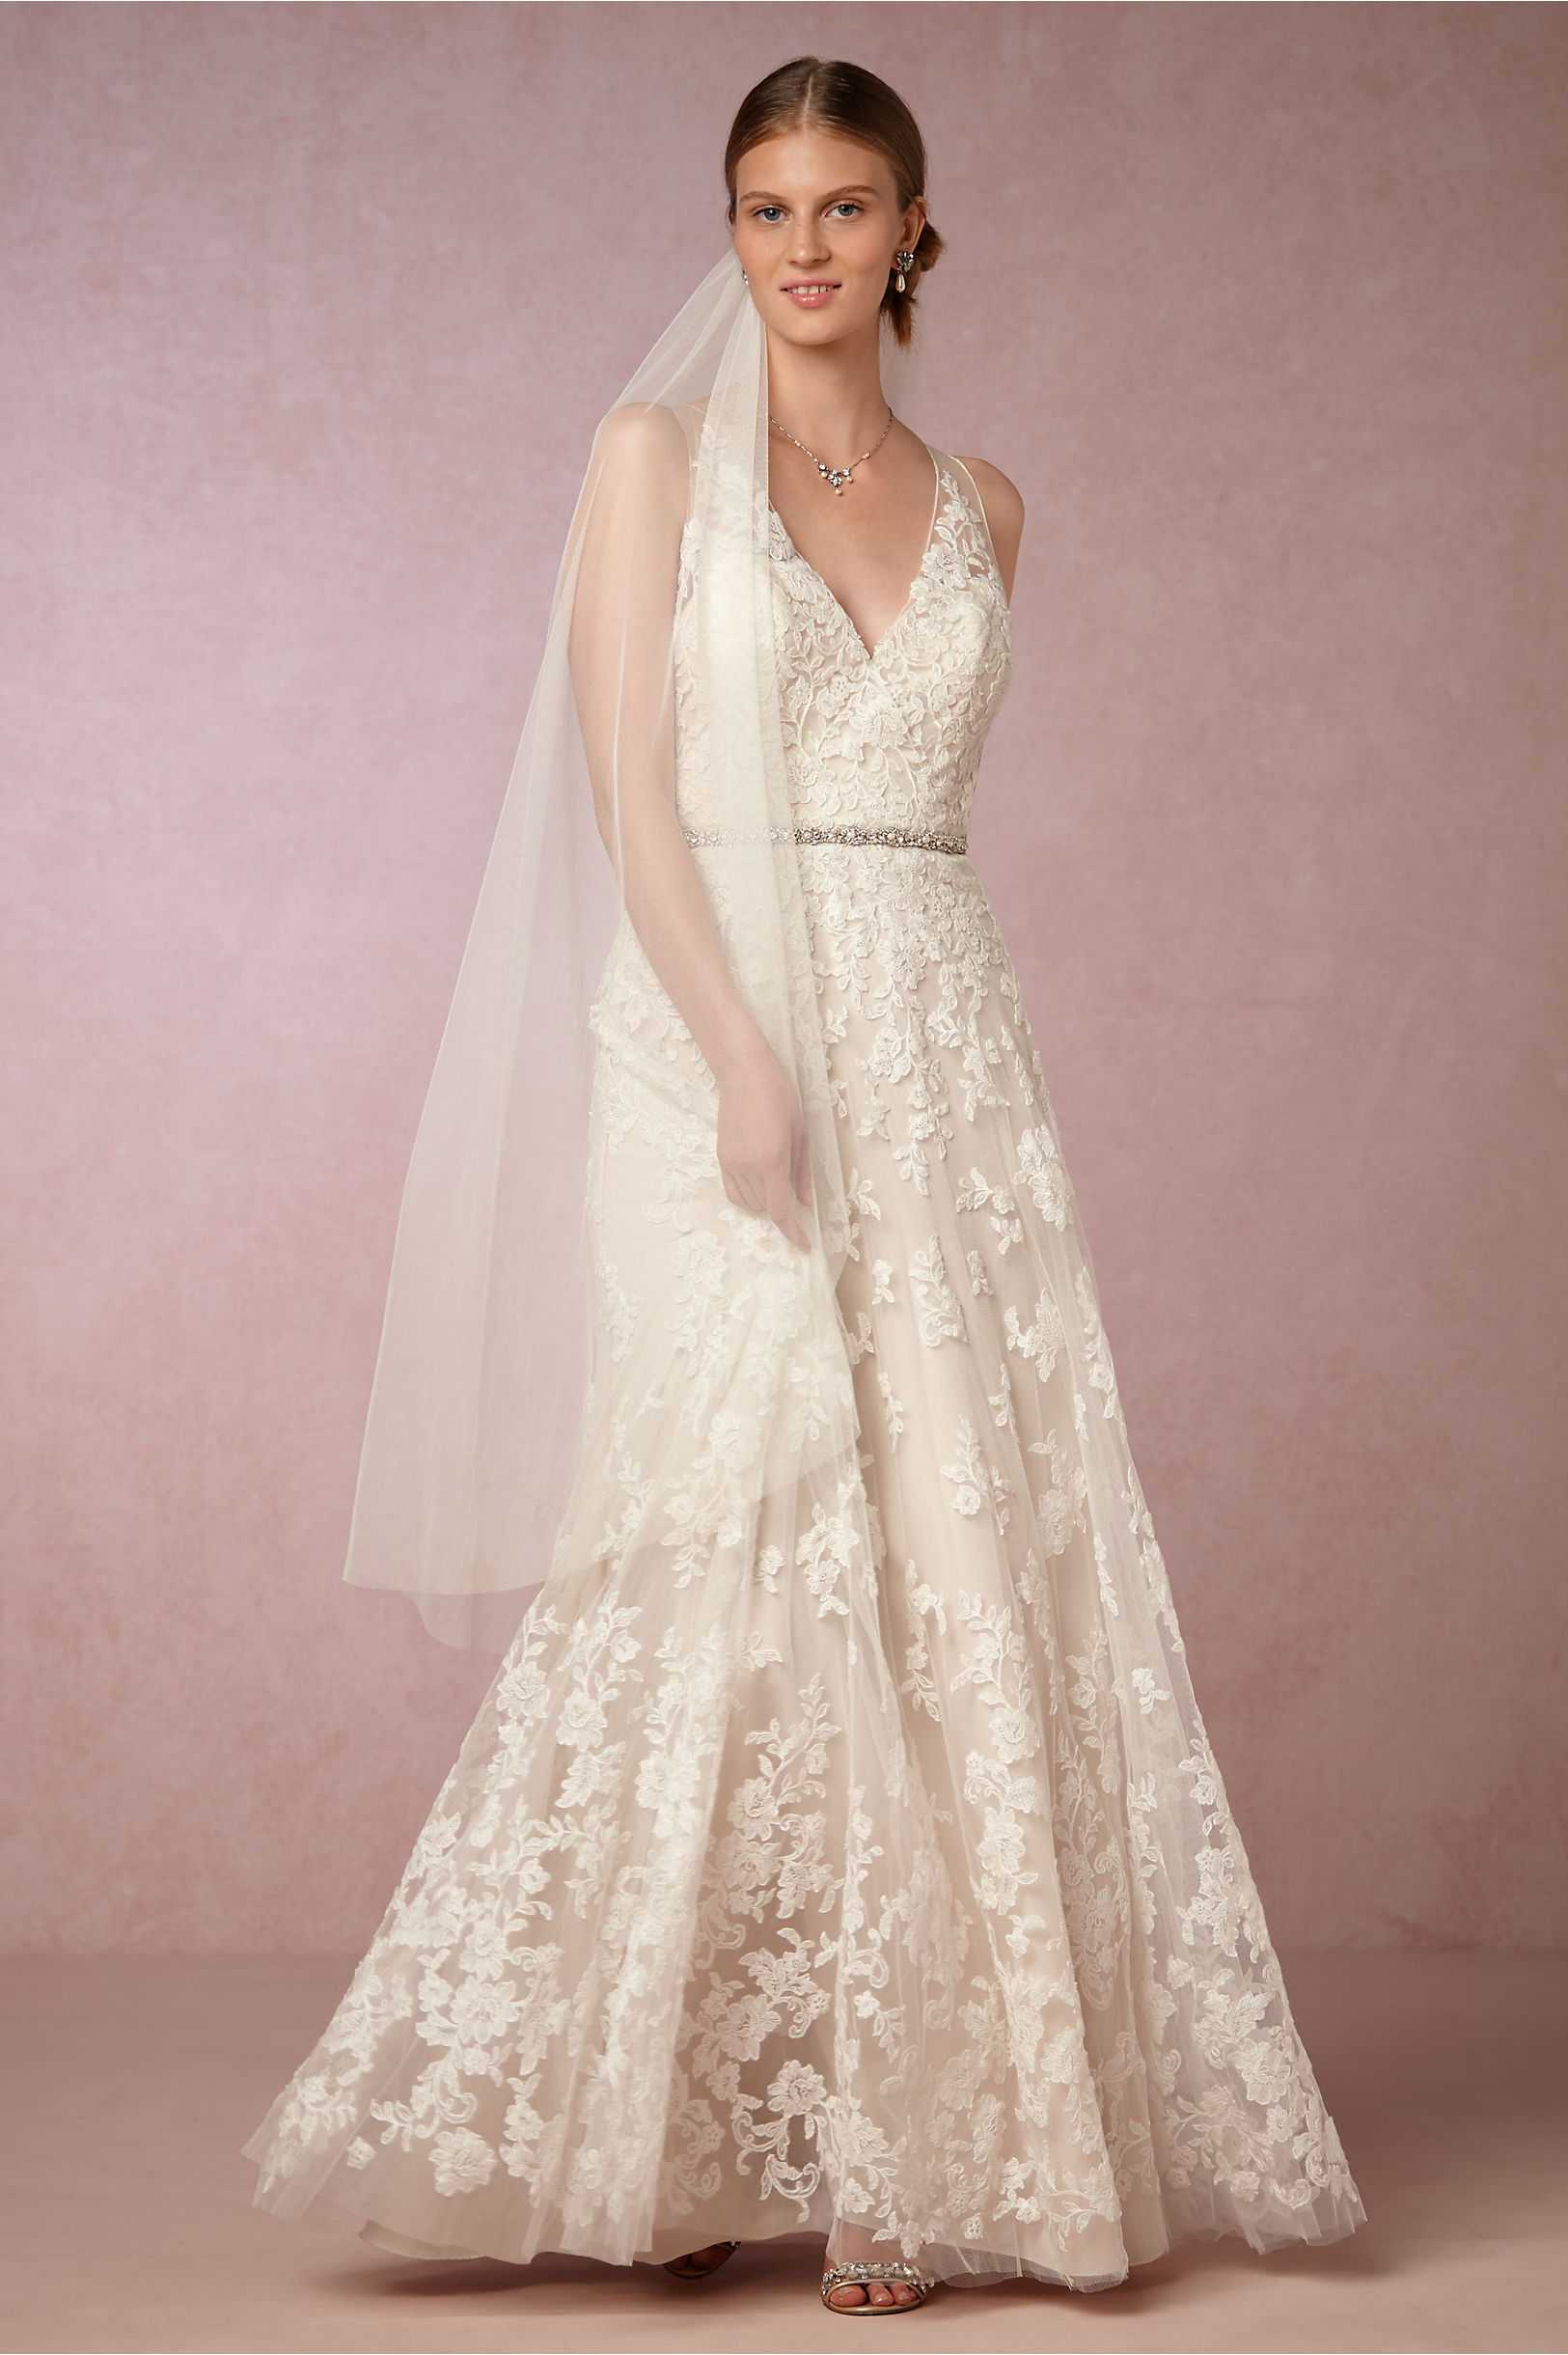 Blaire Gown in Sale | BHLDN